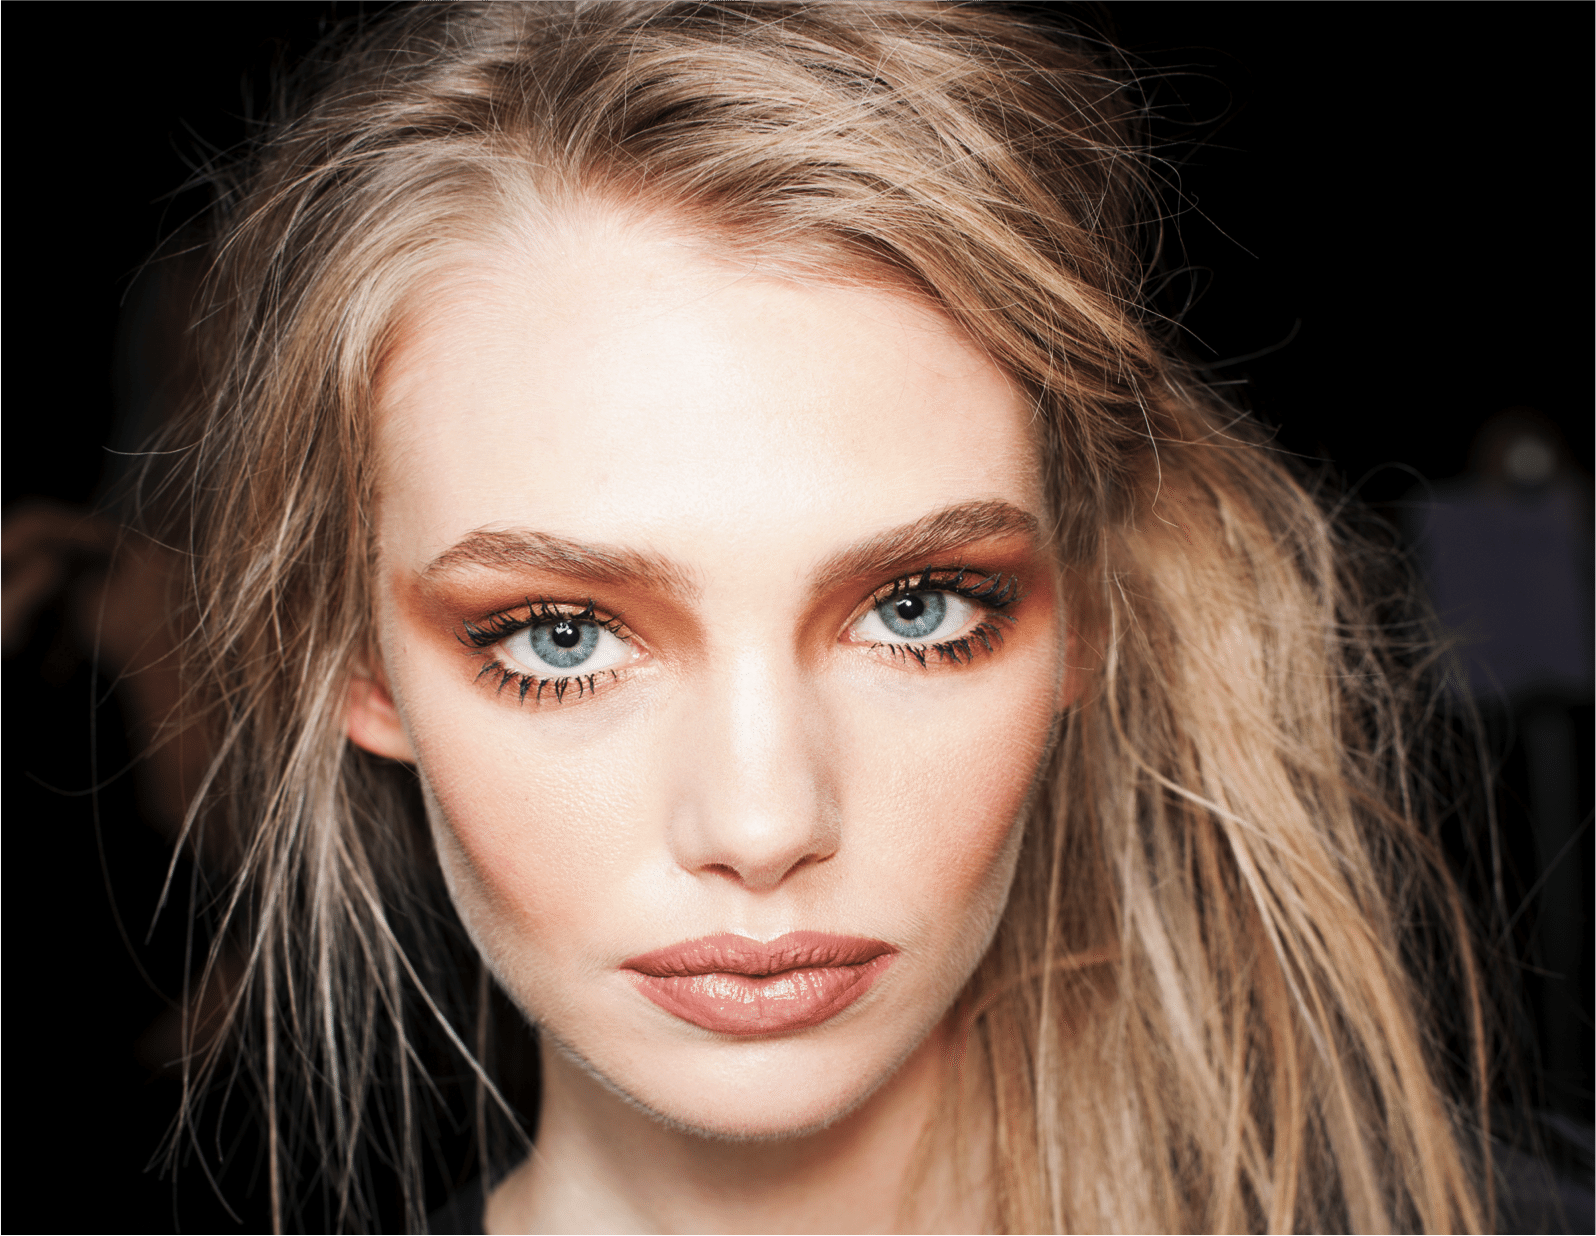 New Zealand Fashion Week: MAC Backstage Beauty Wrap